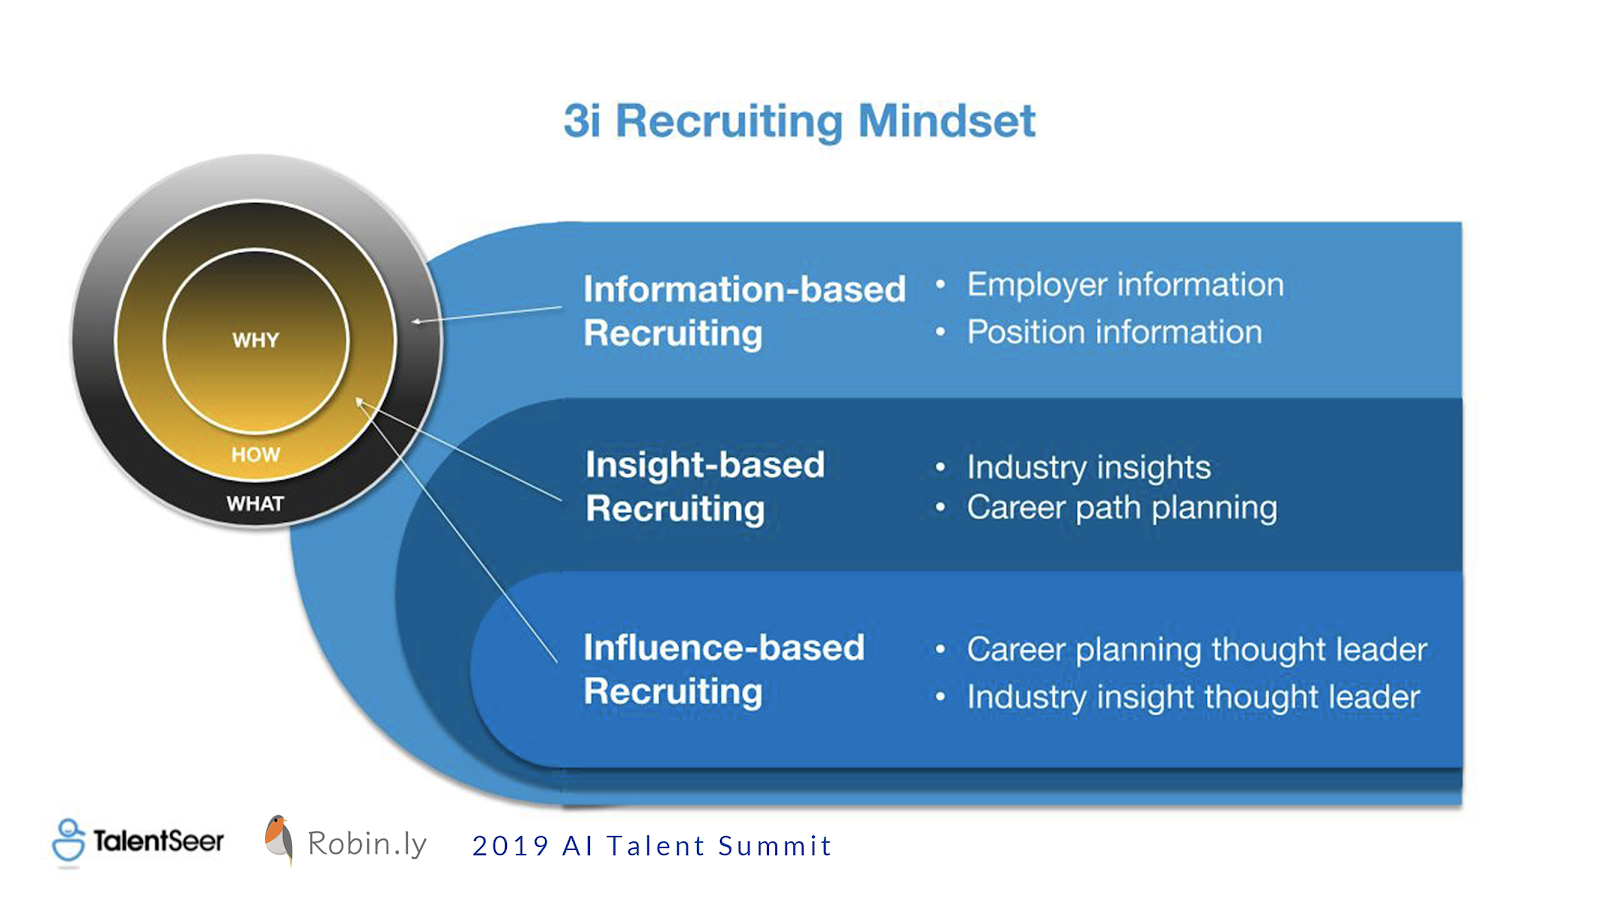 3i Recruiting Mindset, Alex Ren @ TalentSeer - 2019 AI Talent Summit Highlights: Building Teams for The Future of AI